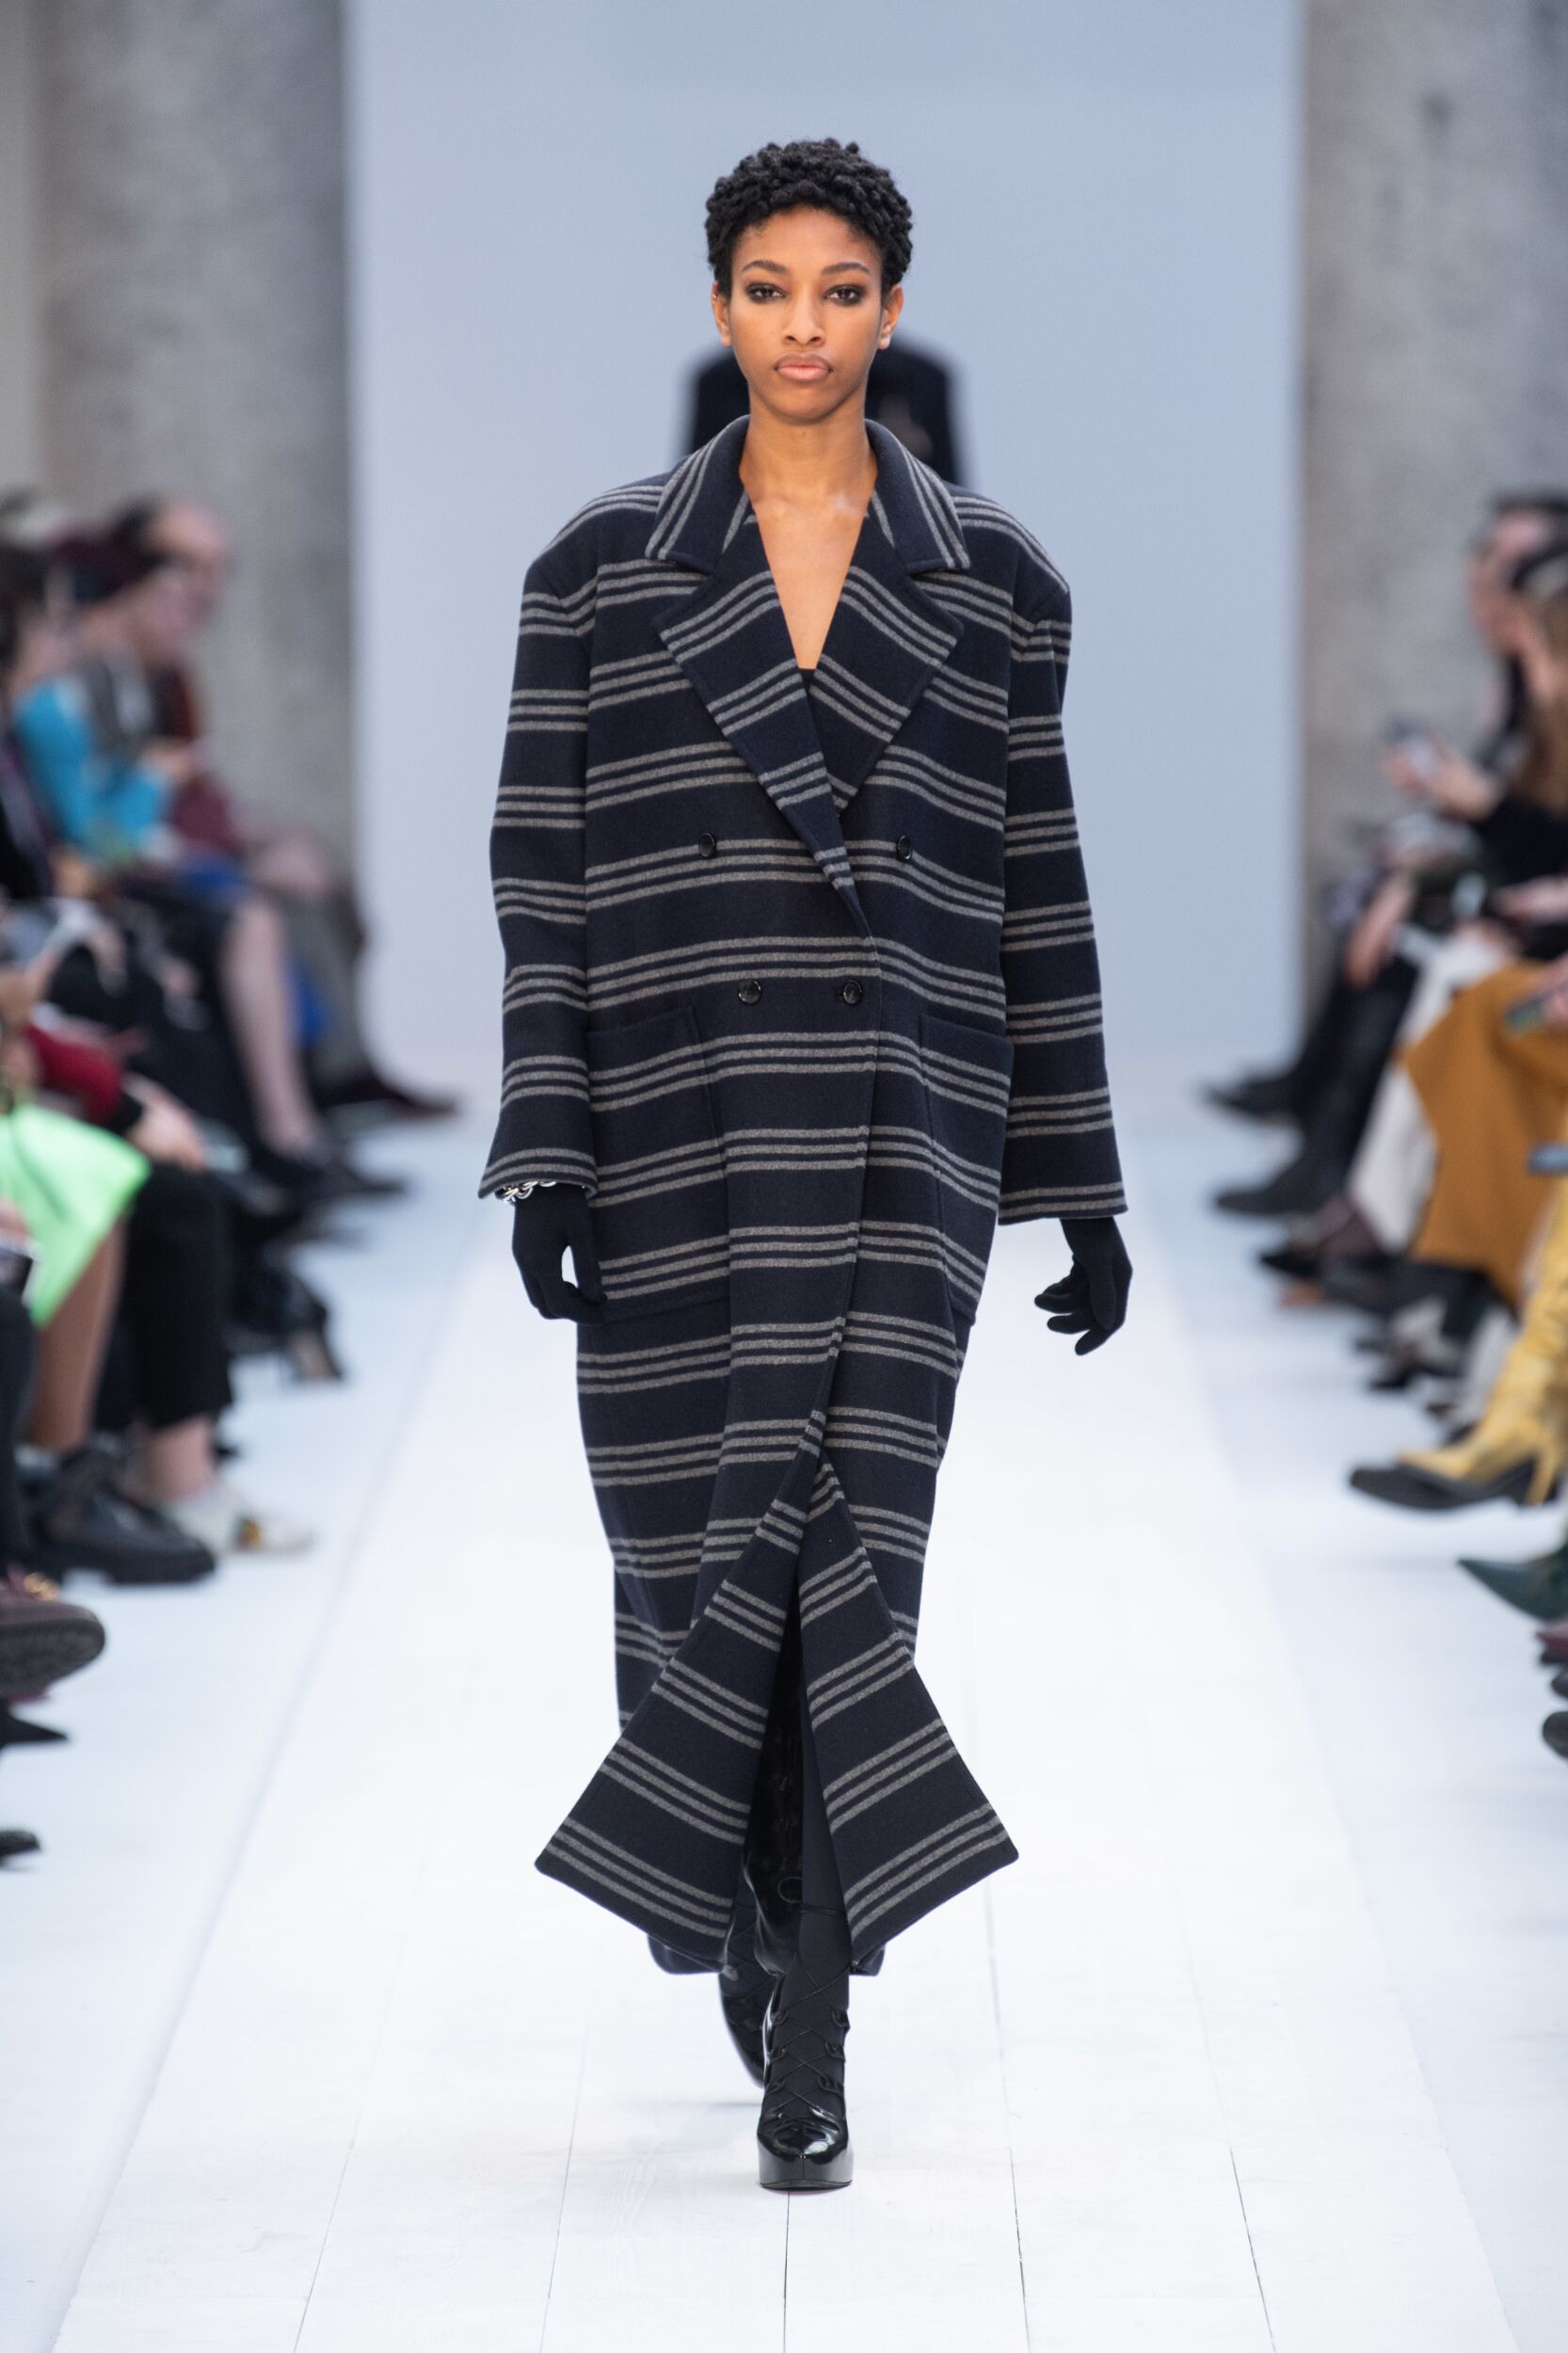 Max Mara Fall Winter 2020 Women's Collection  The Skinny Beep